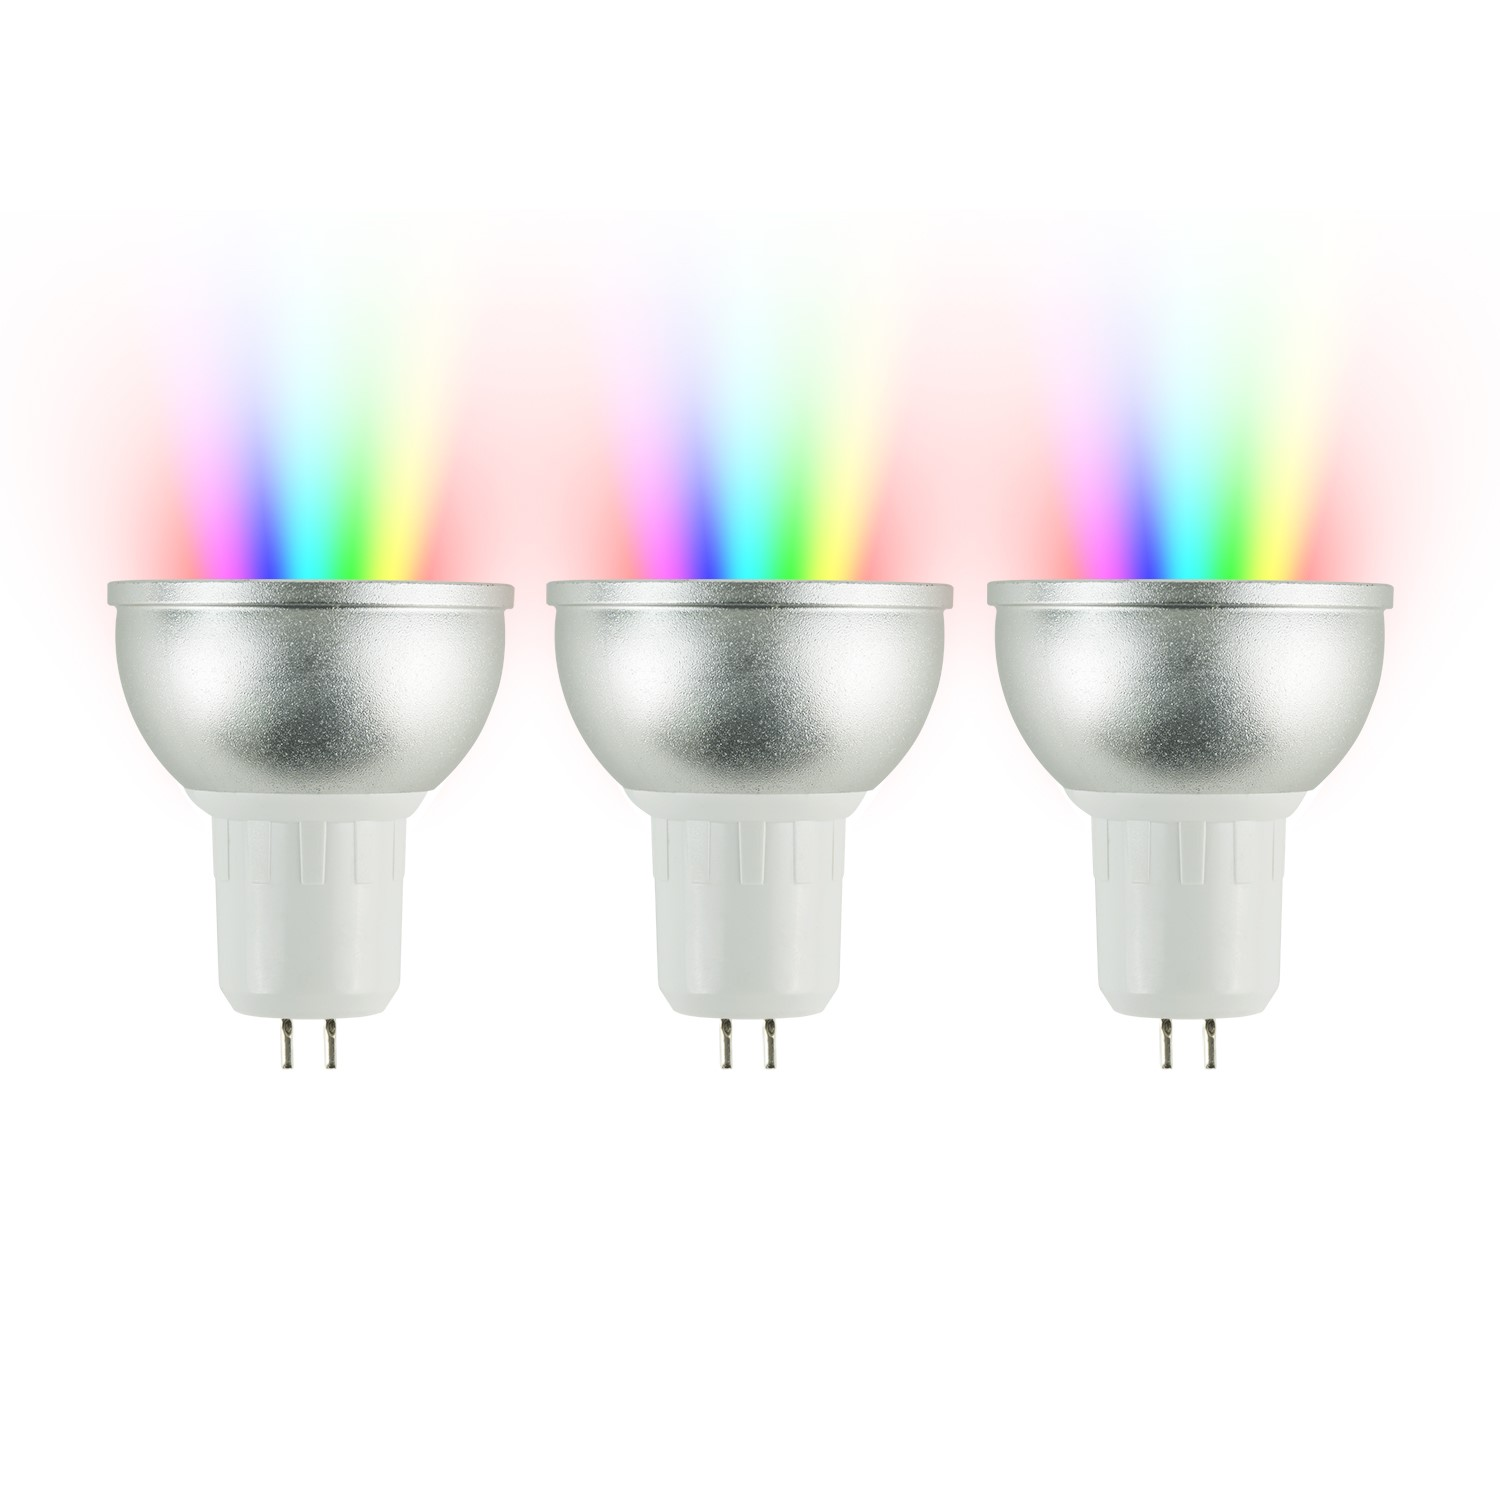 electriQ Smart dimmable colour Wifi Bulb with MR16 short spotlight fitting  3 Pack